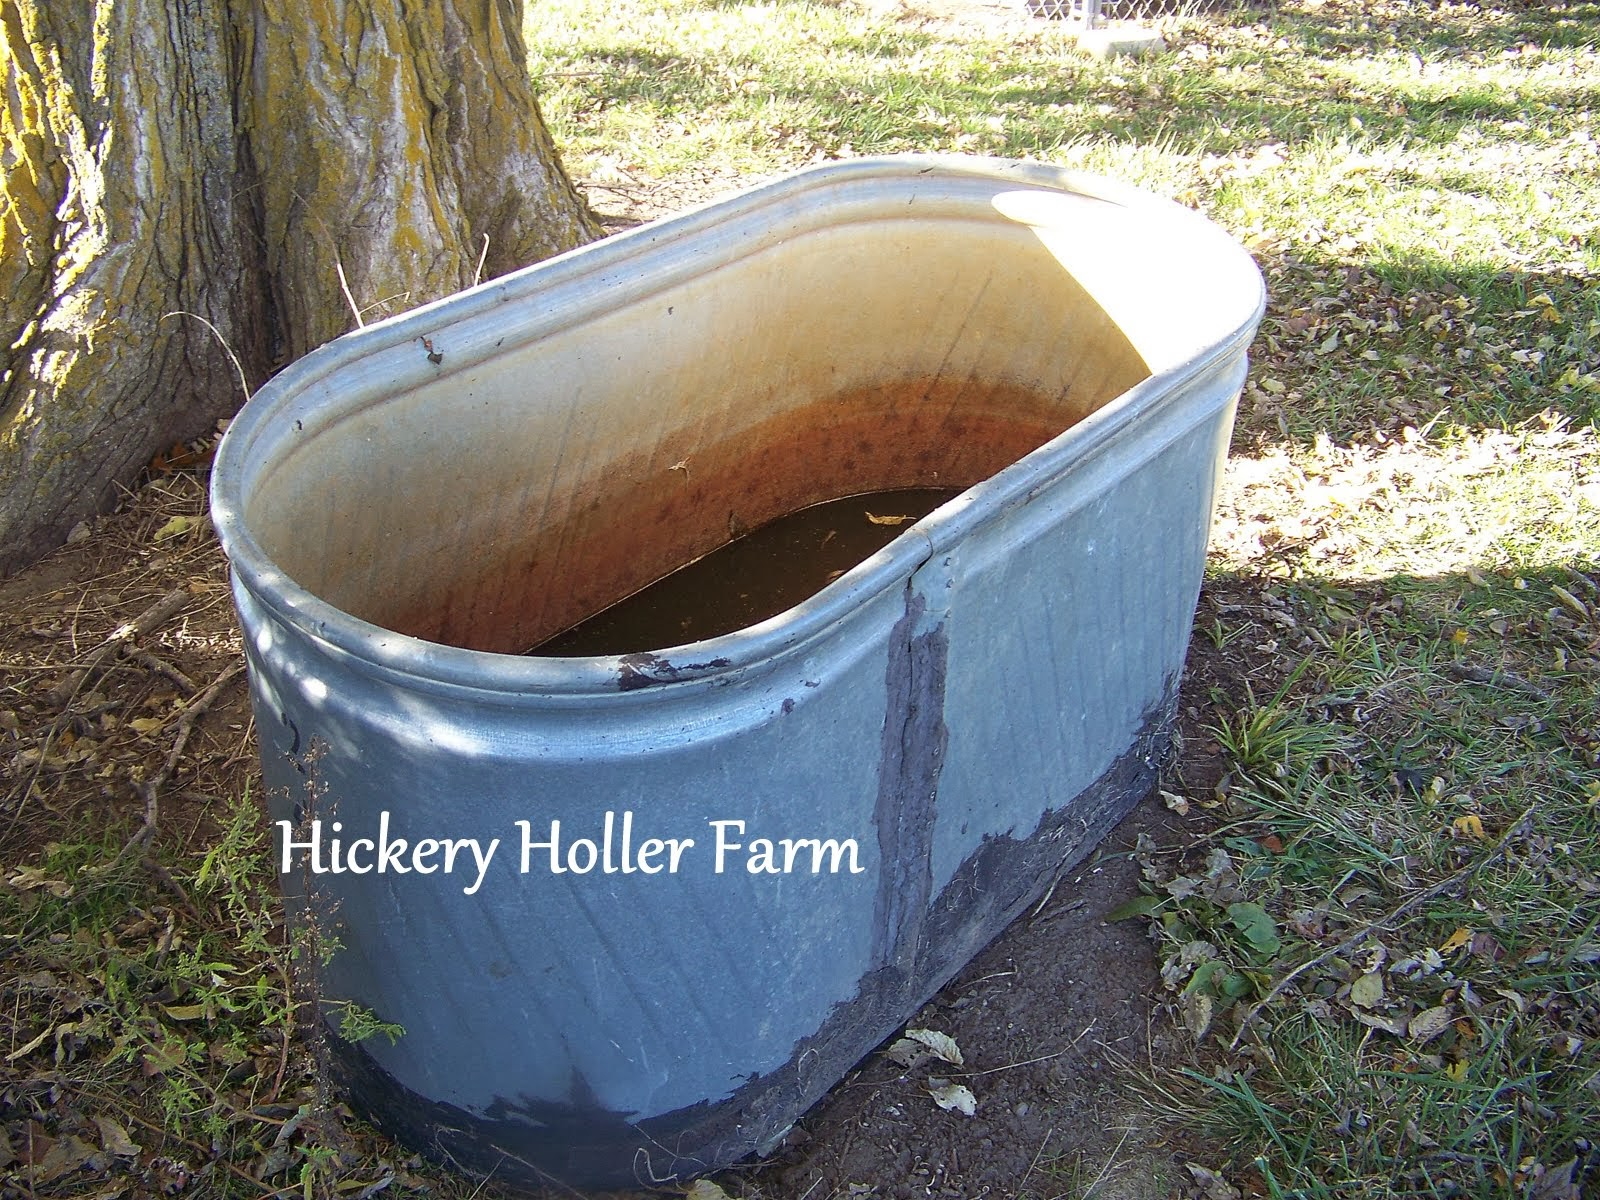 Hickery Holler Farm: Skinning A Turtle